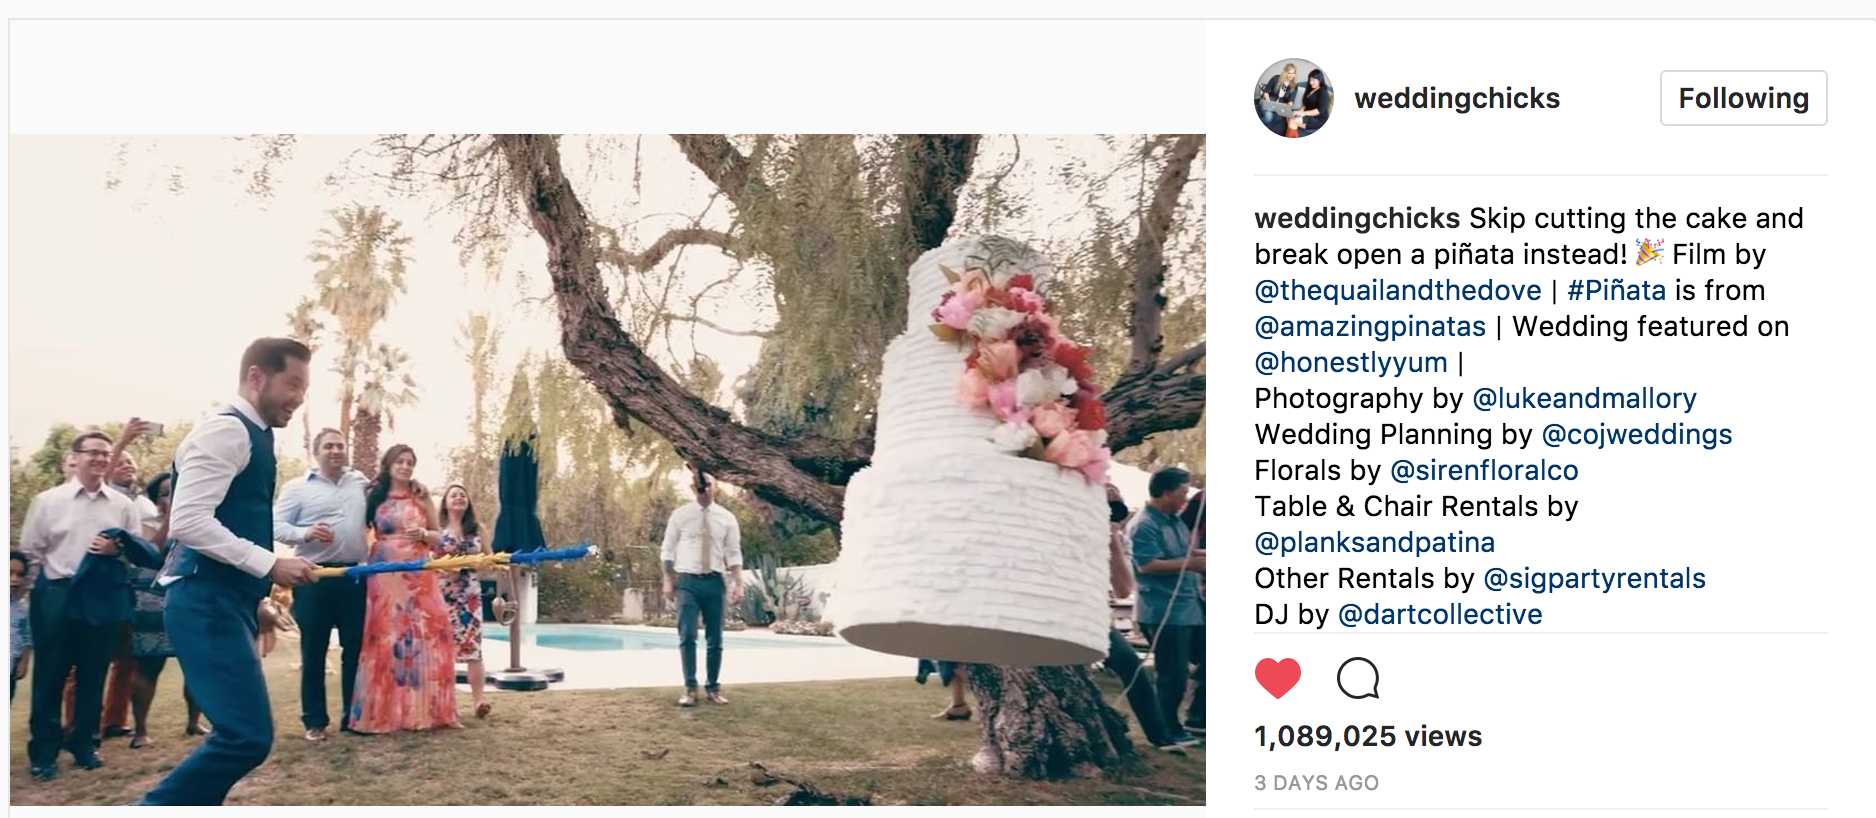 Screenshot of wedding chicks instagram